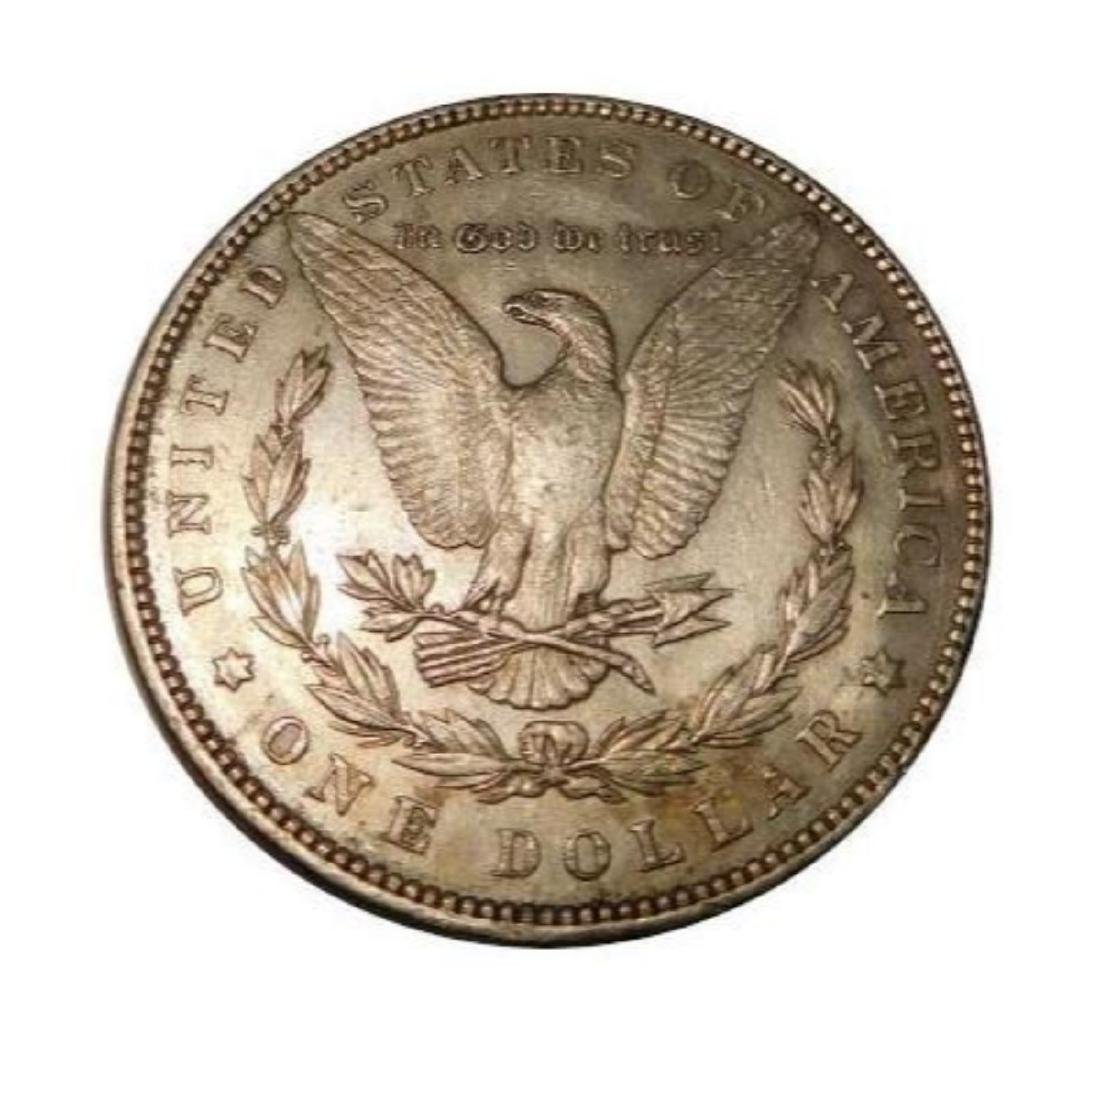 1896 Morgan Dollar - 2